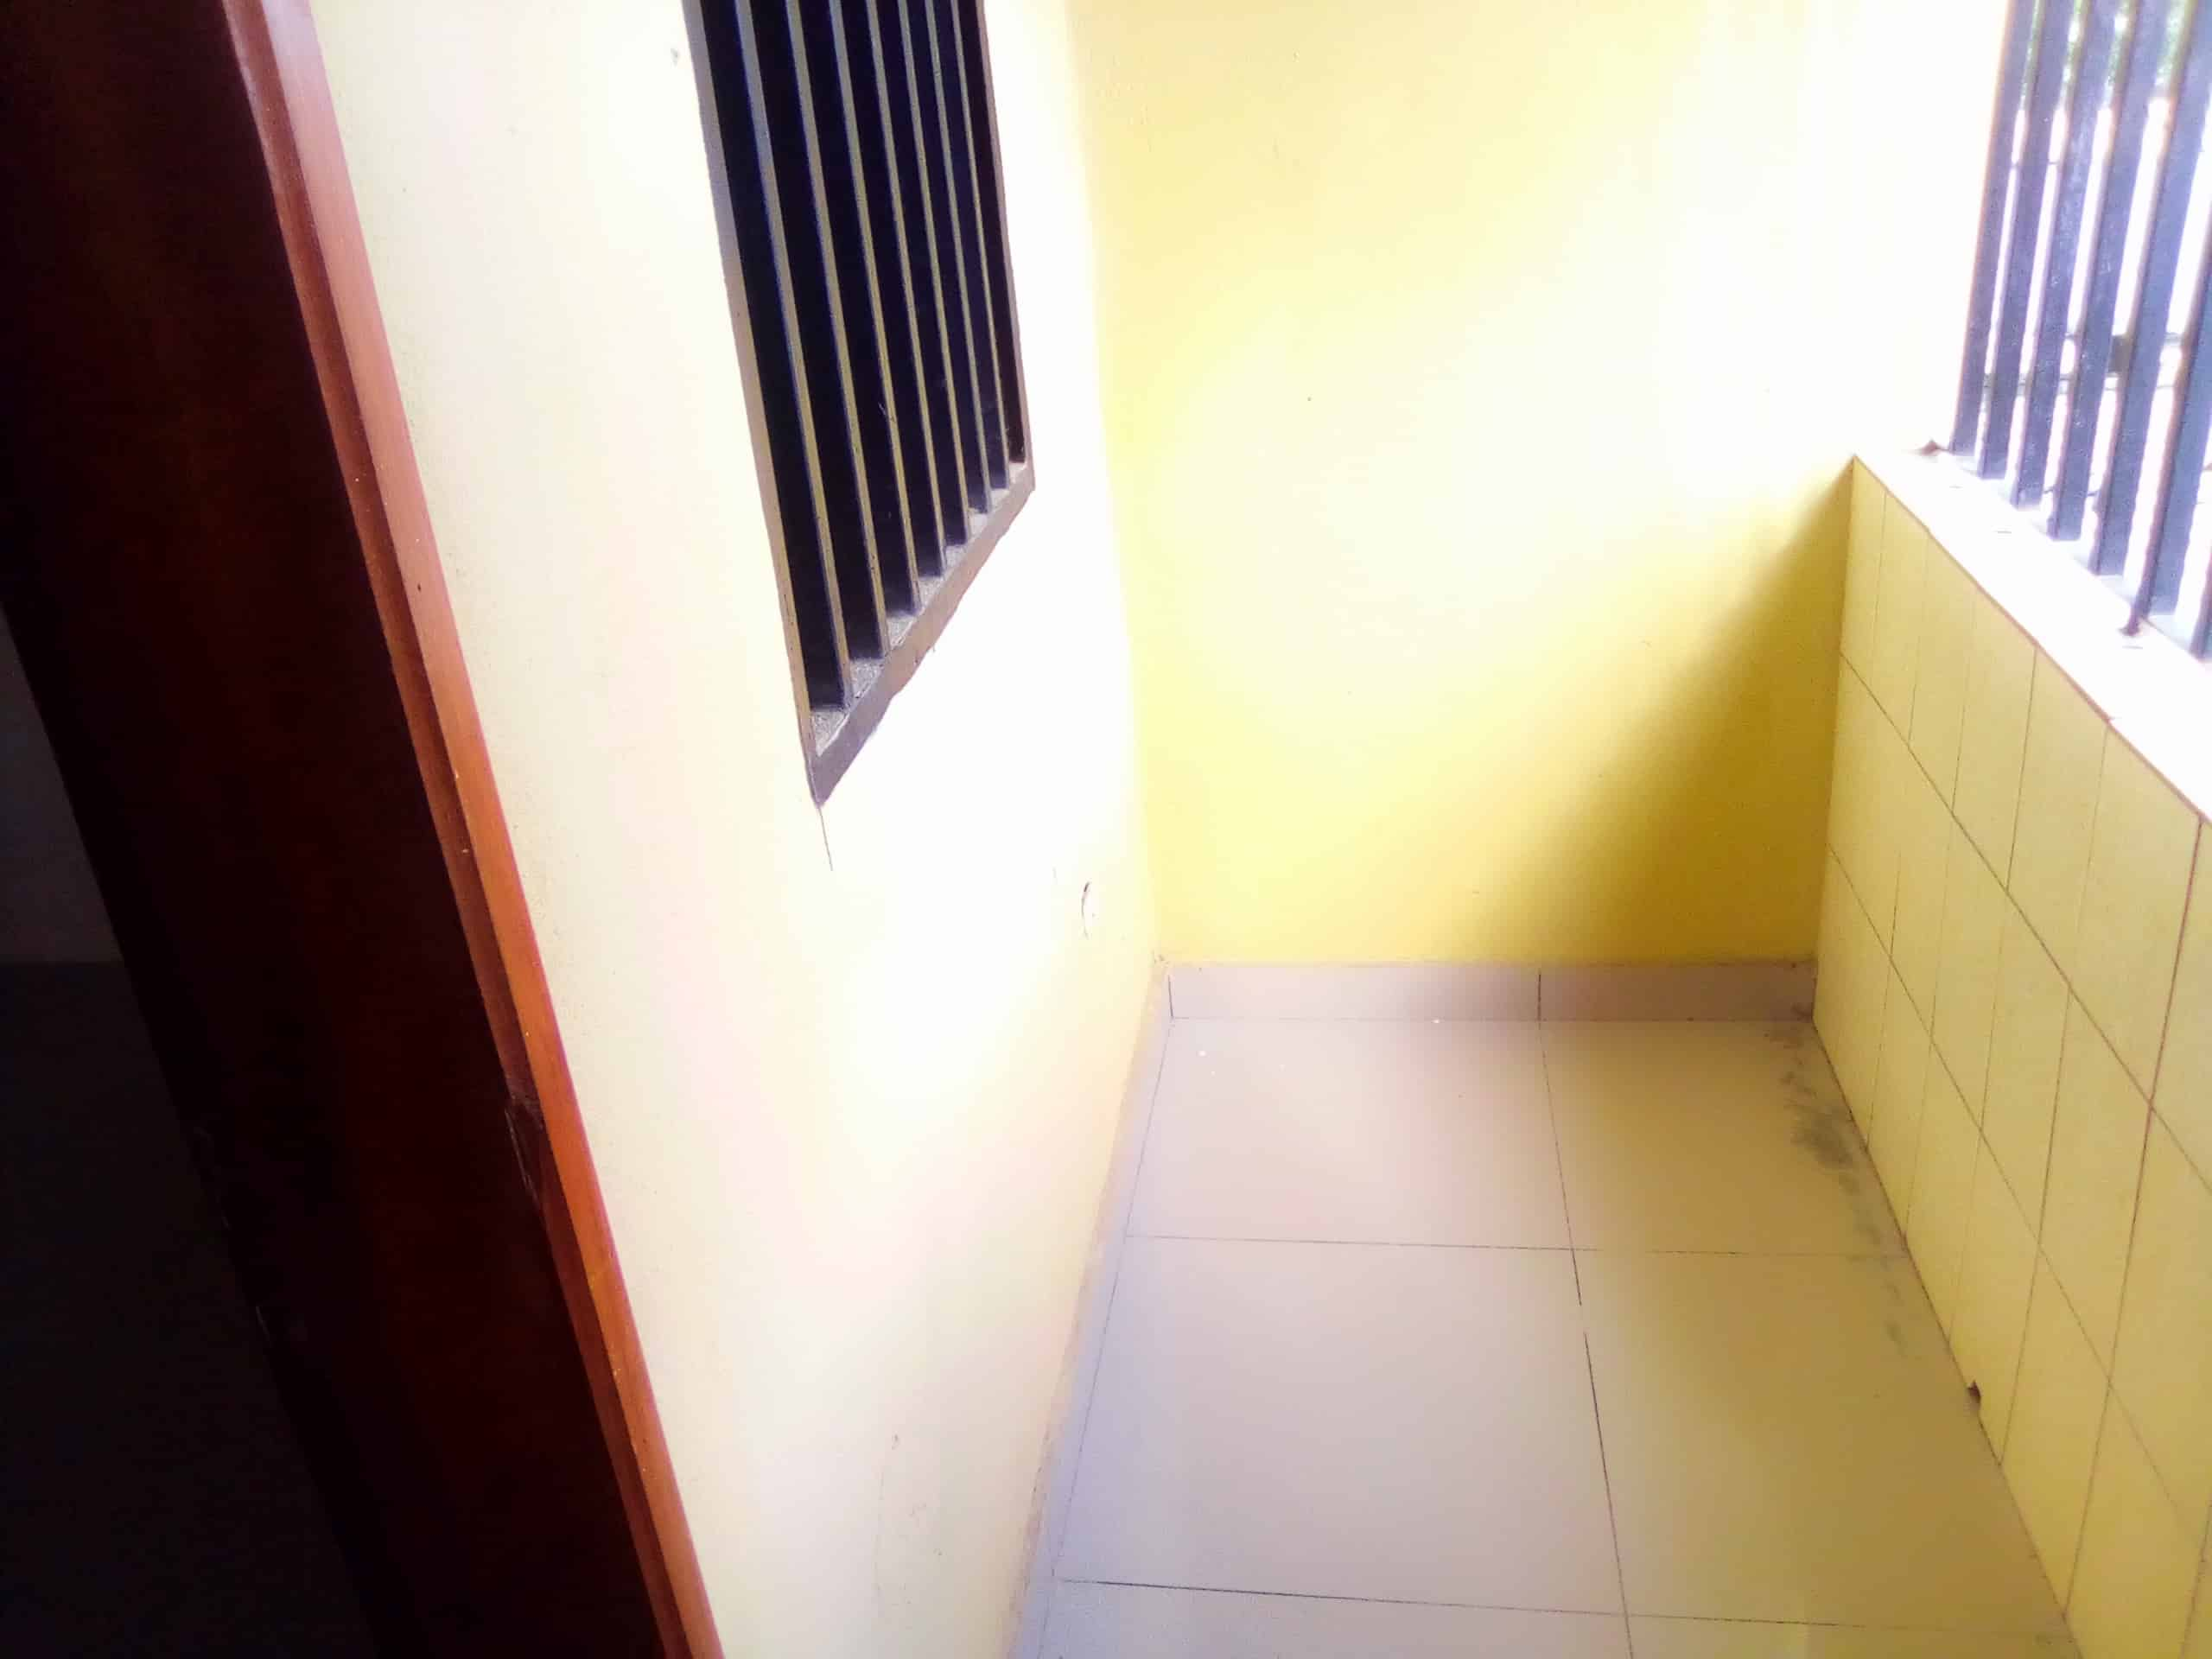 Studio to rent - Douala, Makepe, poulenc - 50 000 FCFA / month